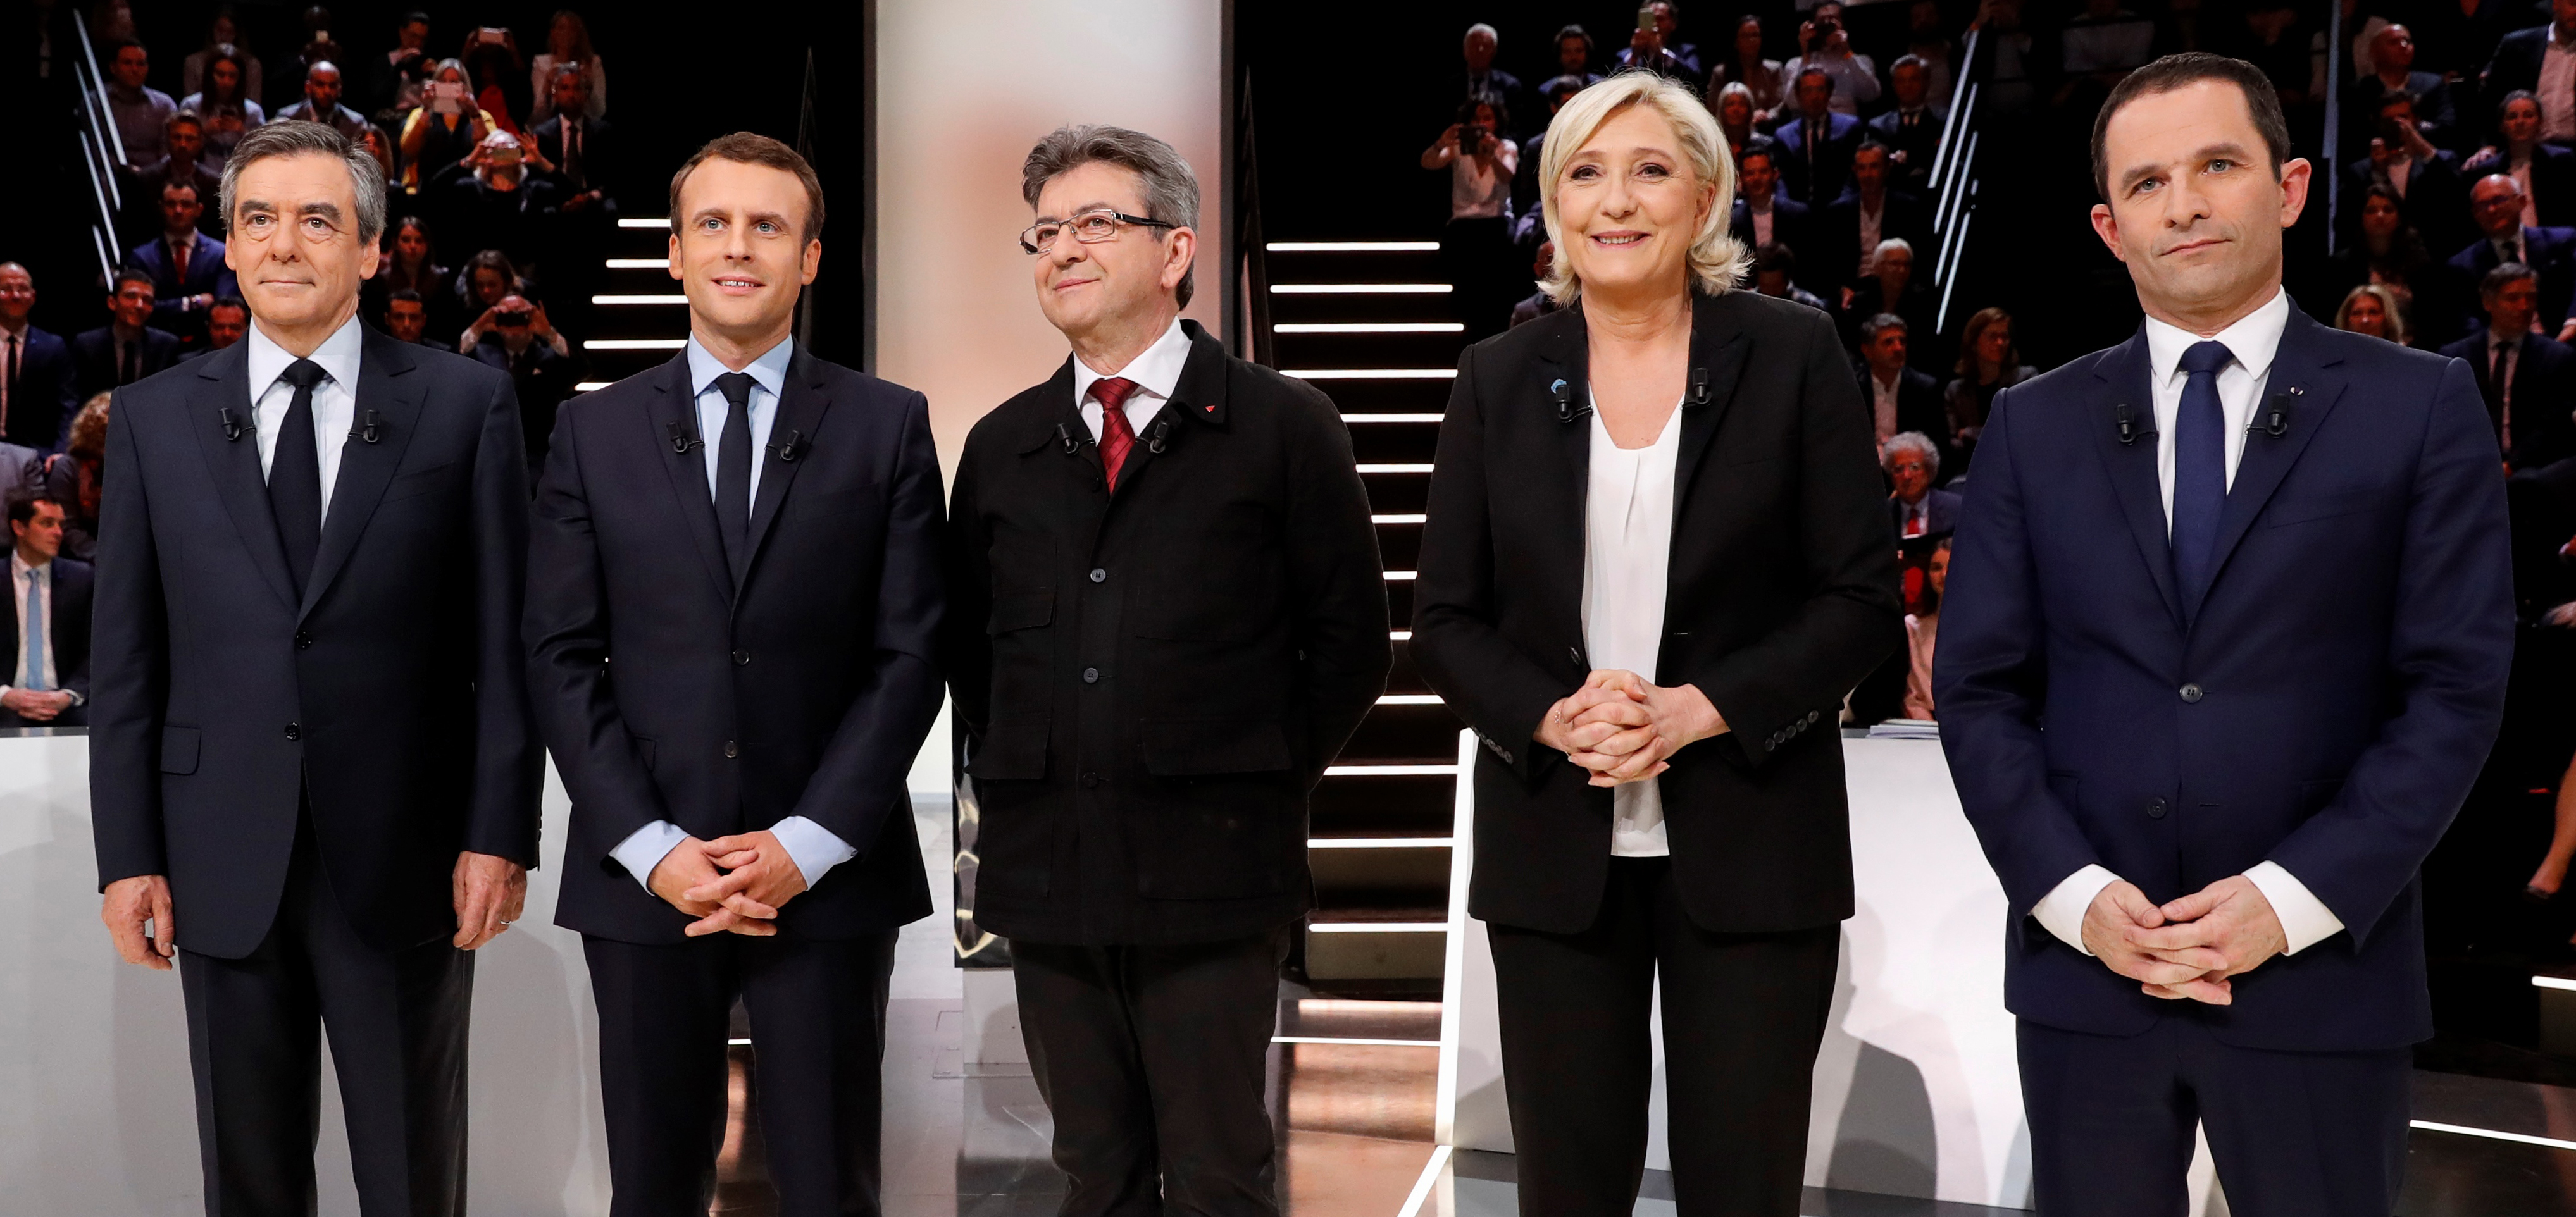 (L to R) French presidential election candidates, right-wing Les Republicains (LR) party Francois Fillon, En Marche! movement Emmanuel Macron, far-left coalition La France insoumise Jean-Luc Melenchon, far-right National Front's Marine Le Pen, and left-wing French Socialist party Benoit Hamon, pose before a debate organised by the French private TV channel TF1 on March 20, 2017 in Aubervilliers, outside Paris.